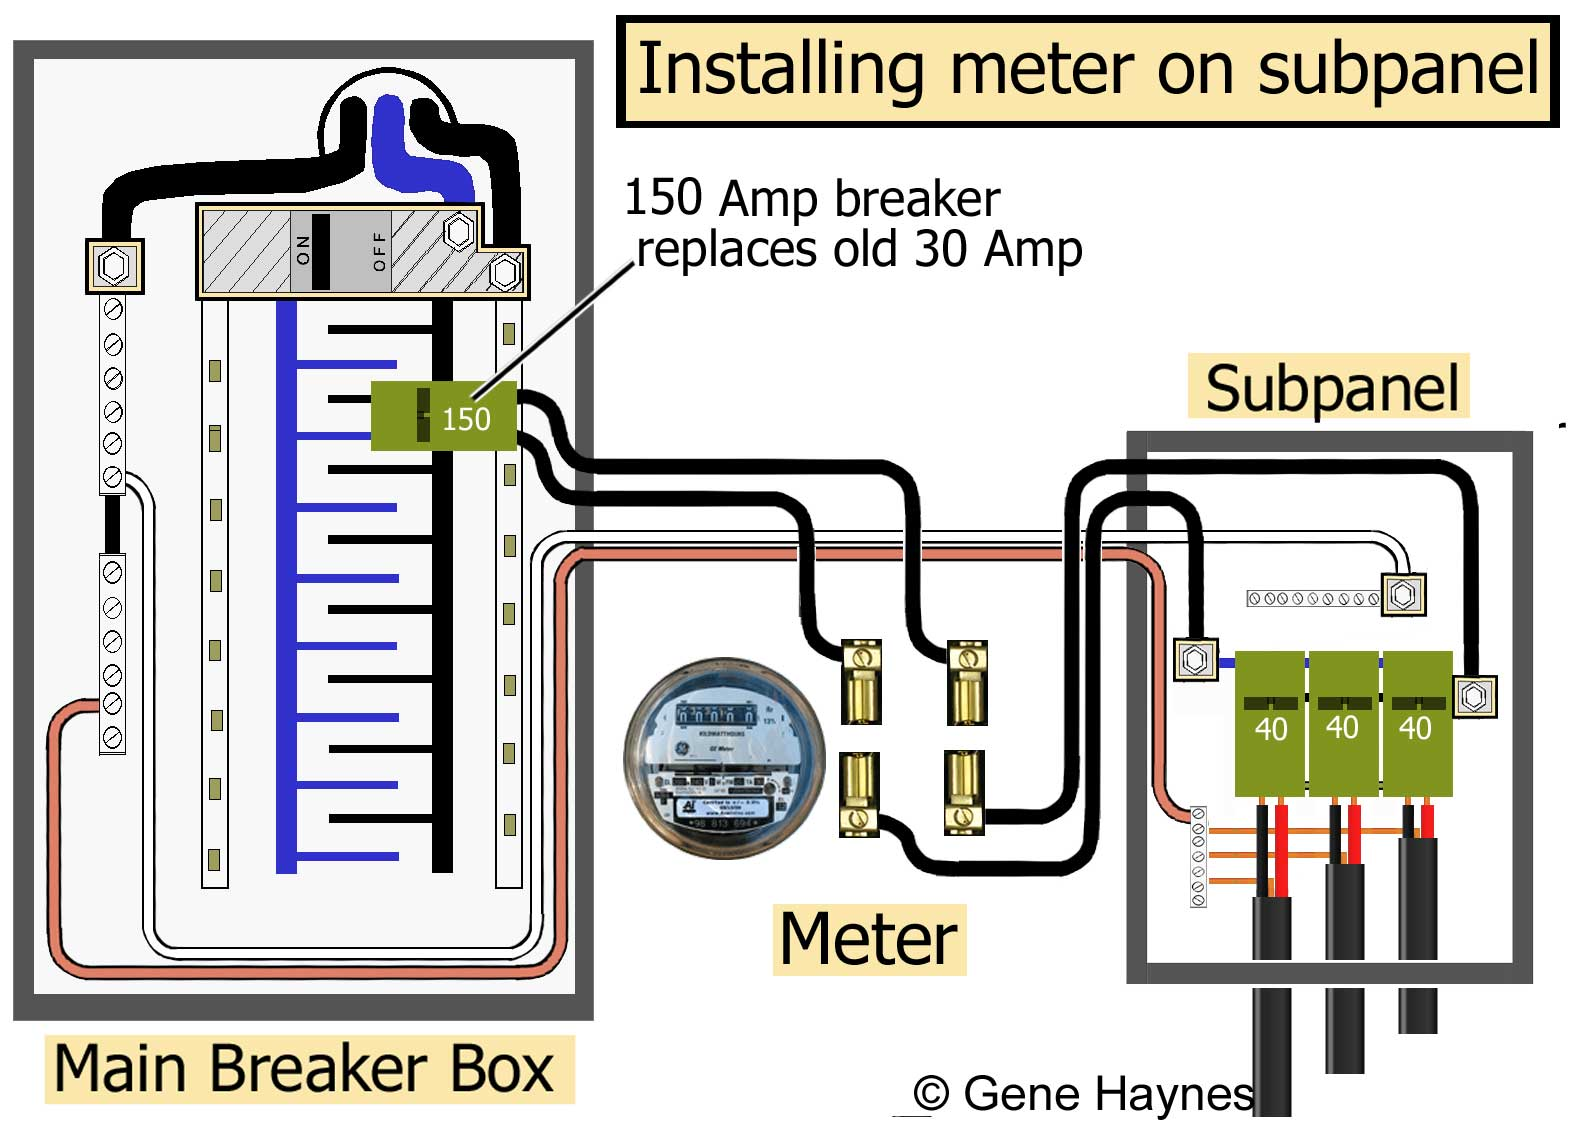 Main subpanel Tankless meter 600 how to wire tankless electric water heater 10 point meter pan wiring diagram at bayanpartner.co